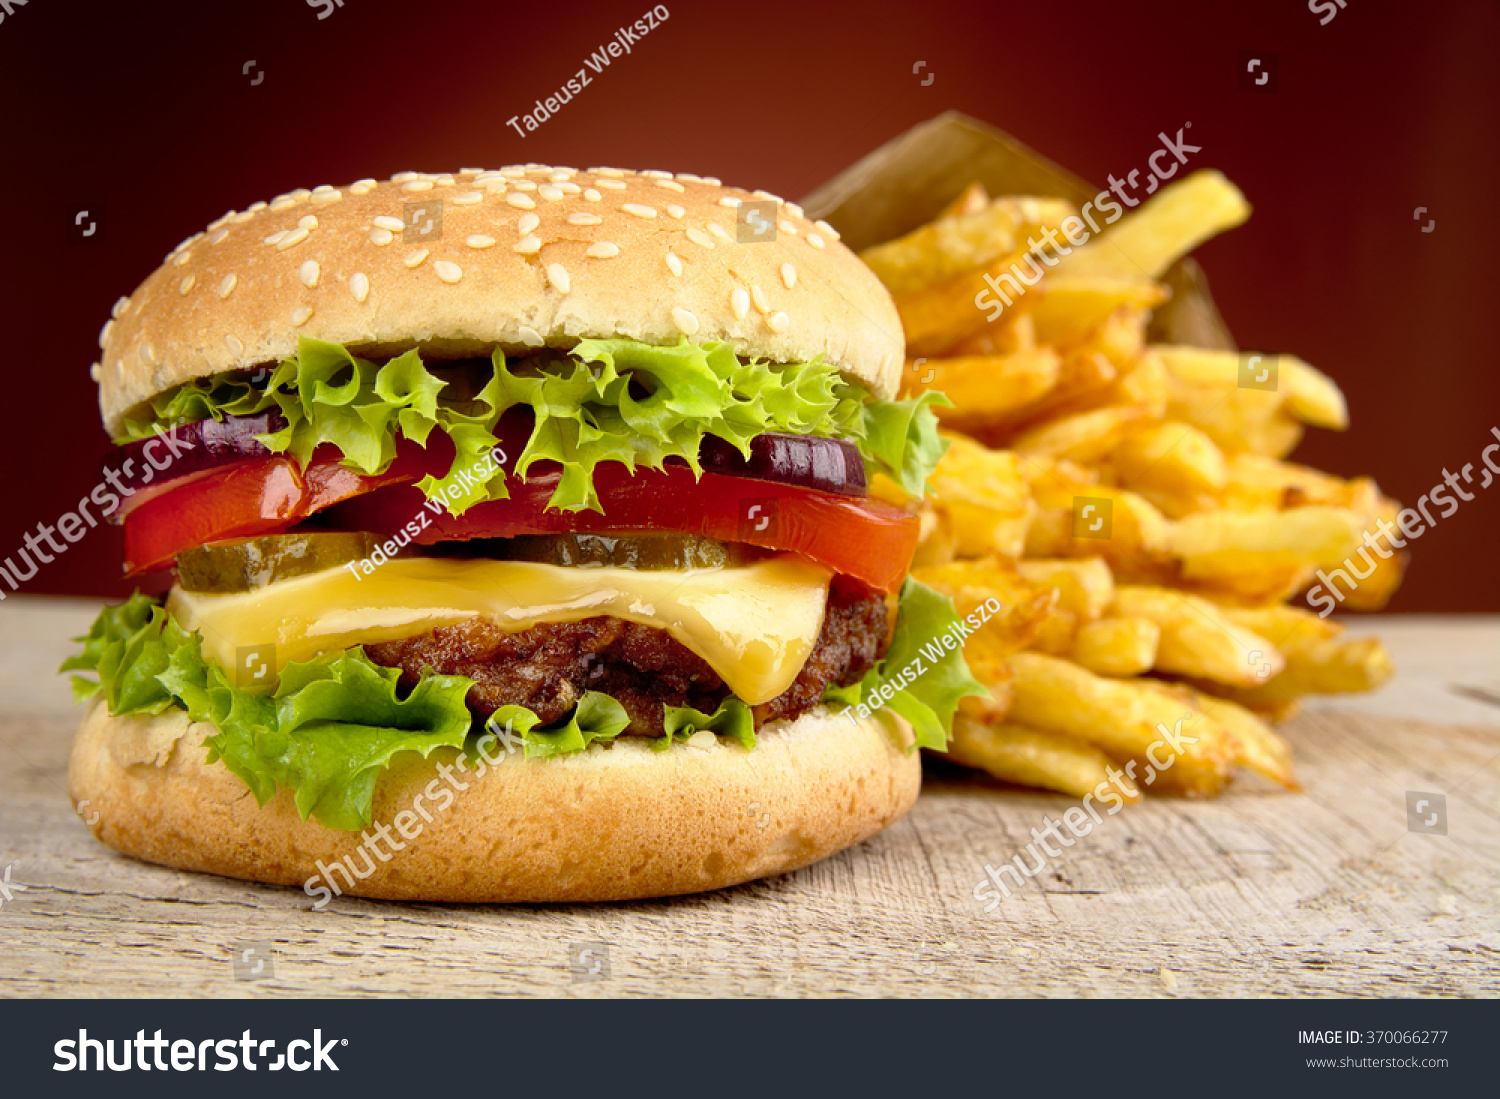 big cheeseburger french fries bag paper stock photo 370066277 shutterstock. Black Bedroom Furniture Sets. Home Design Ideas